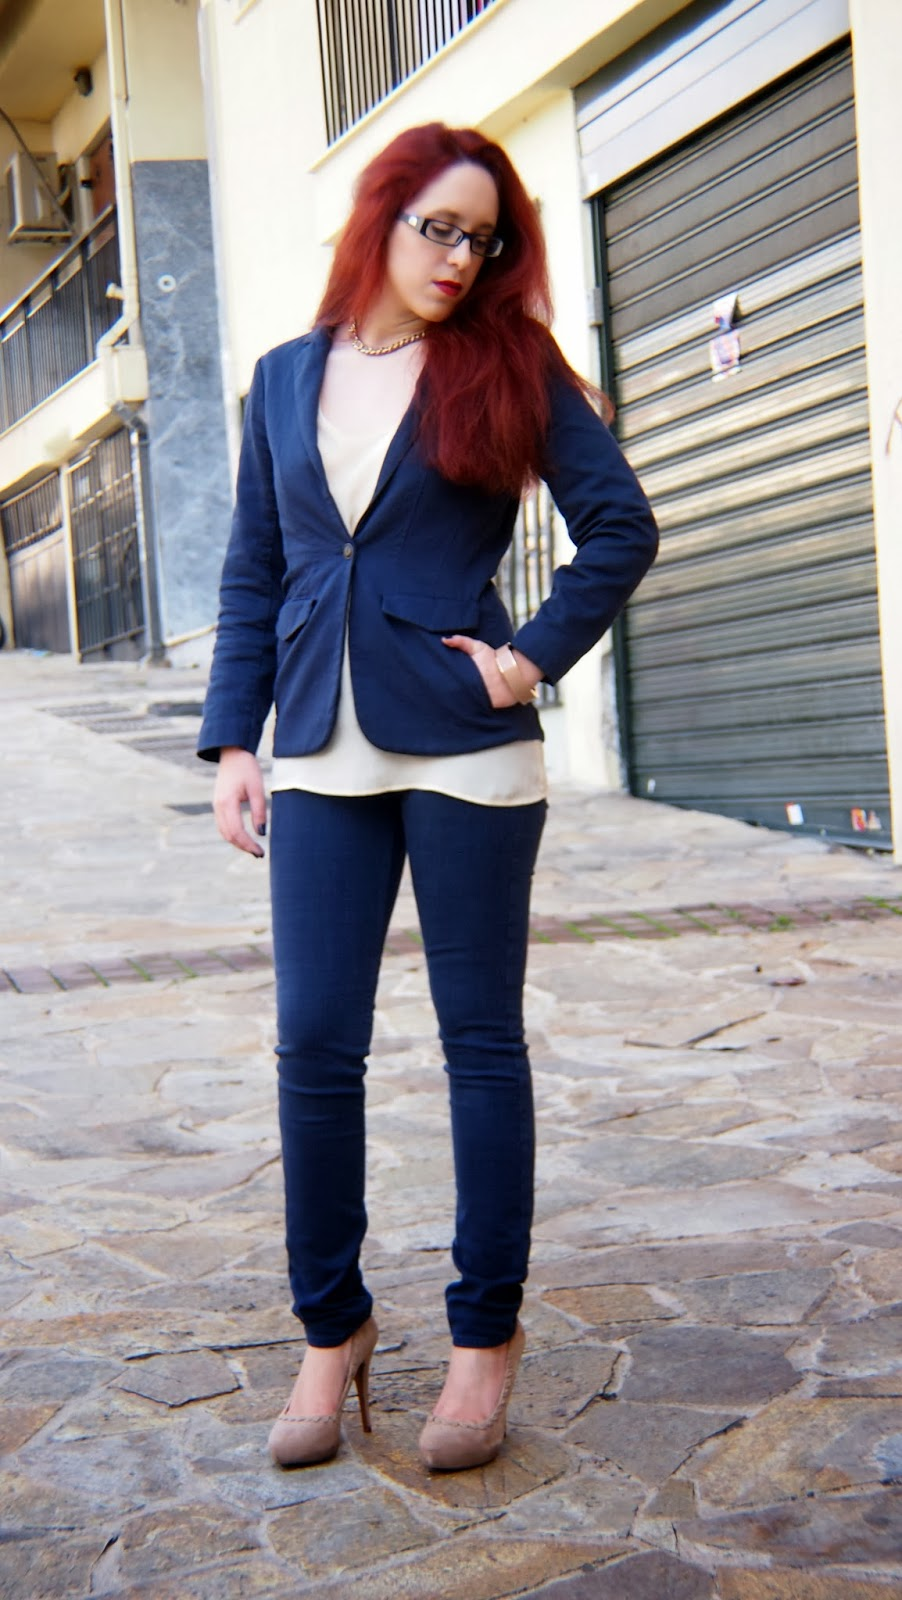 Anna Keni,redhead, spotlights on the redhead,fashion,model,blogger,zara,lee,lee jeans, american vintage,suit,blazer,tokyo jane